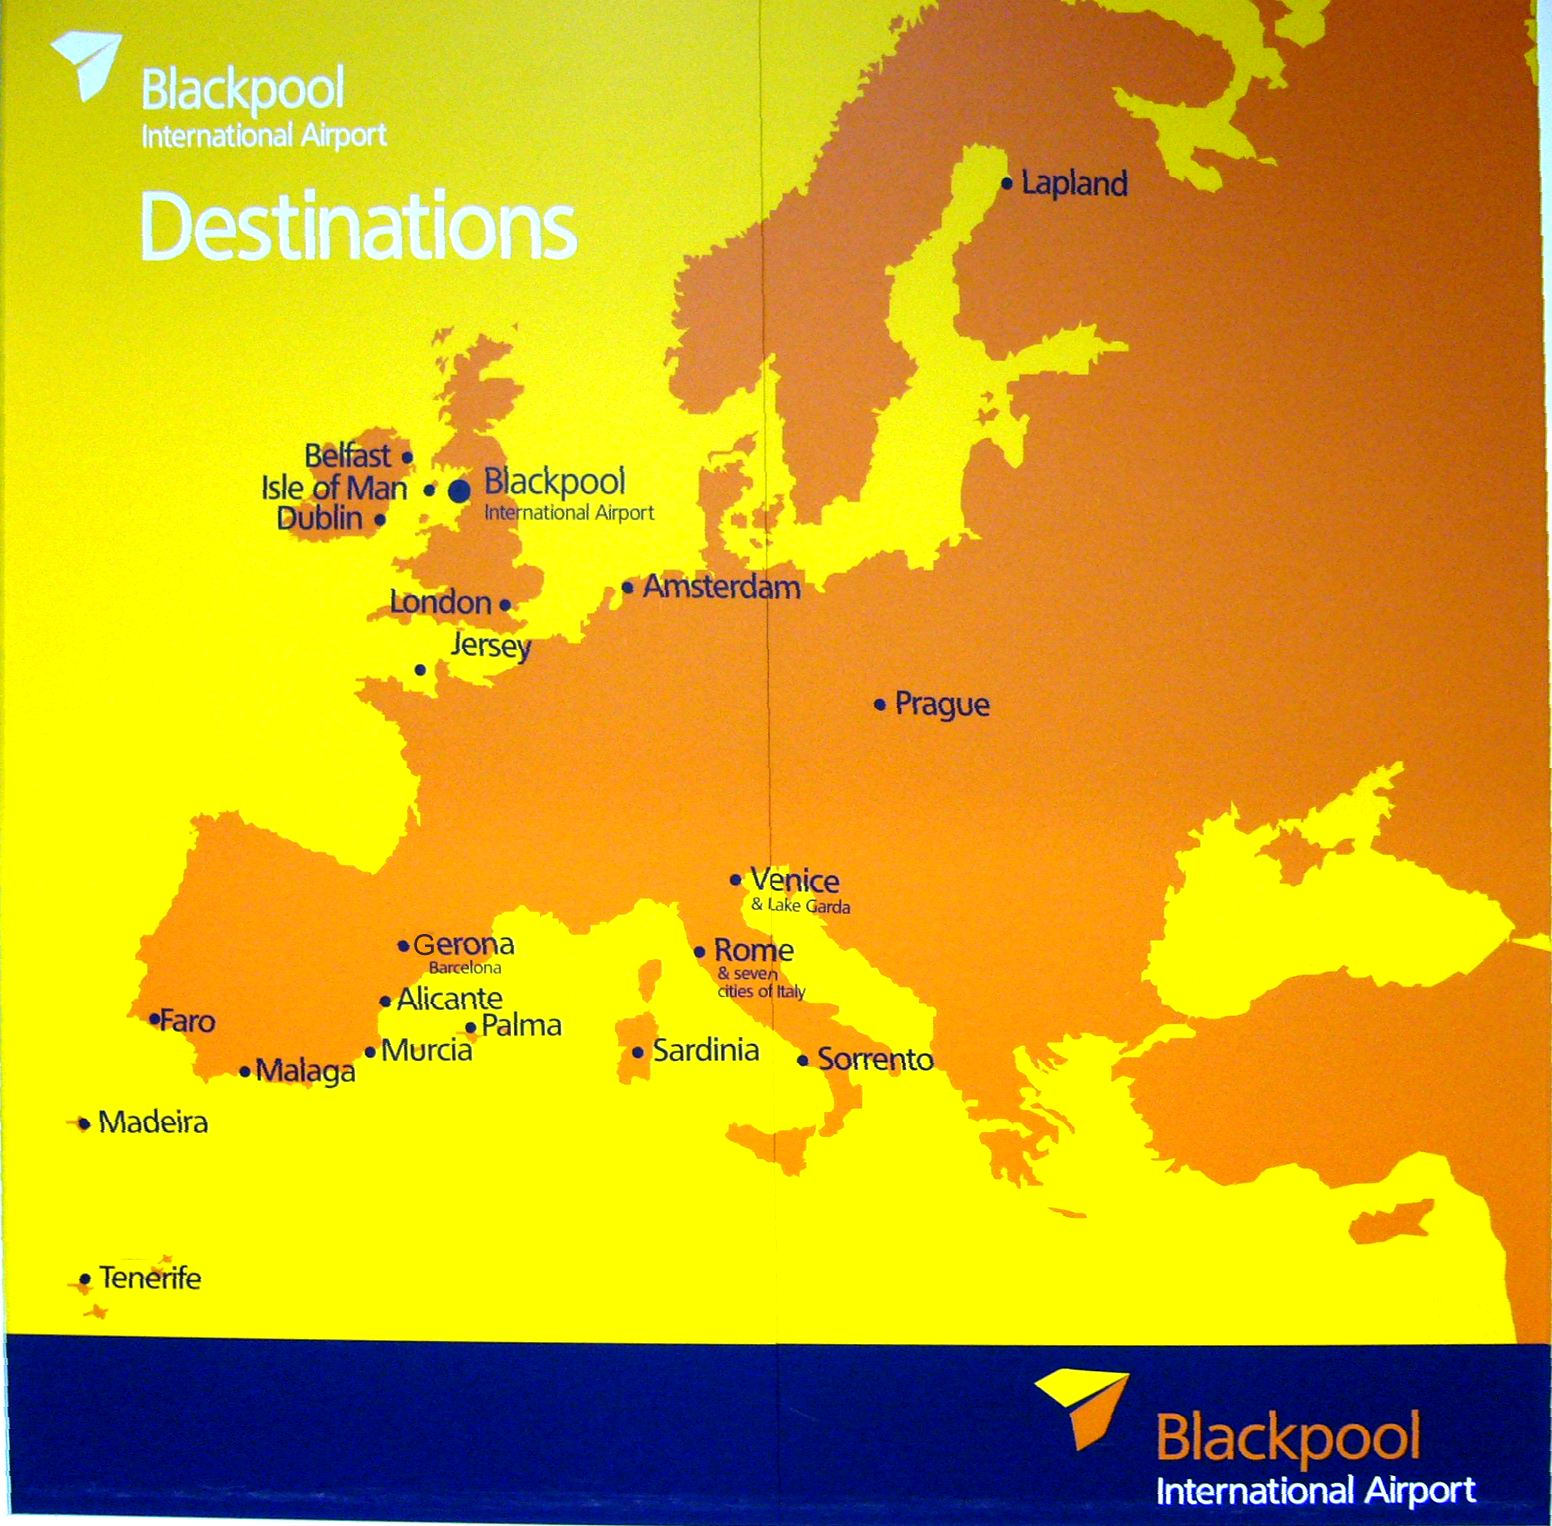 Destinations board at Blackpool Airport